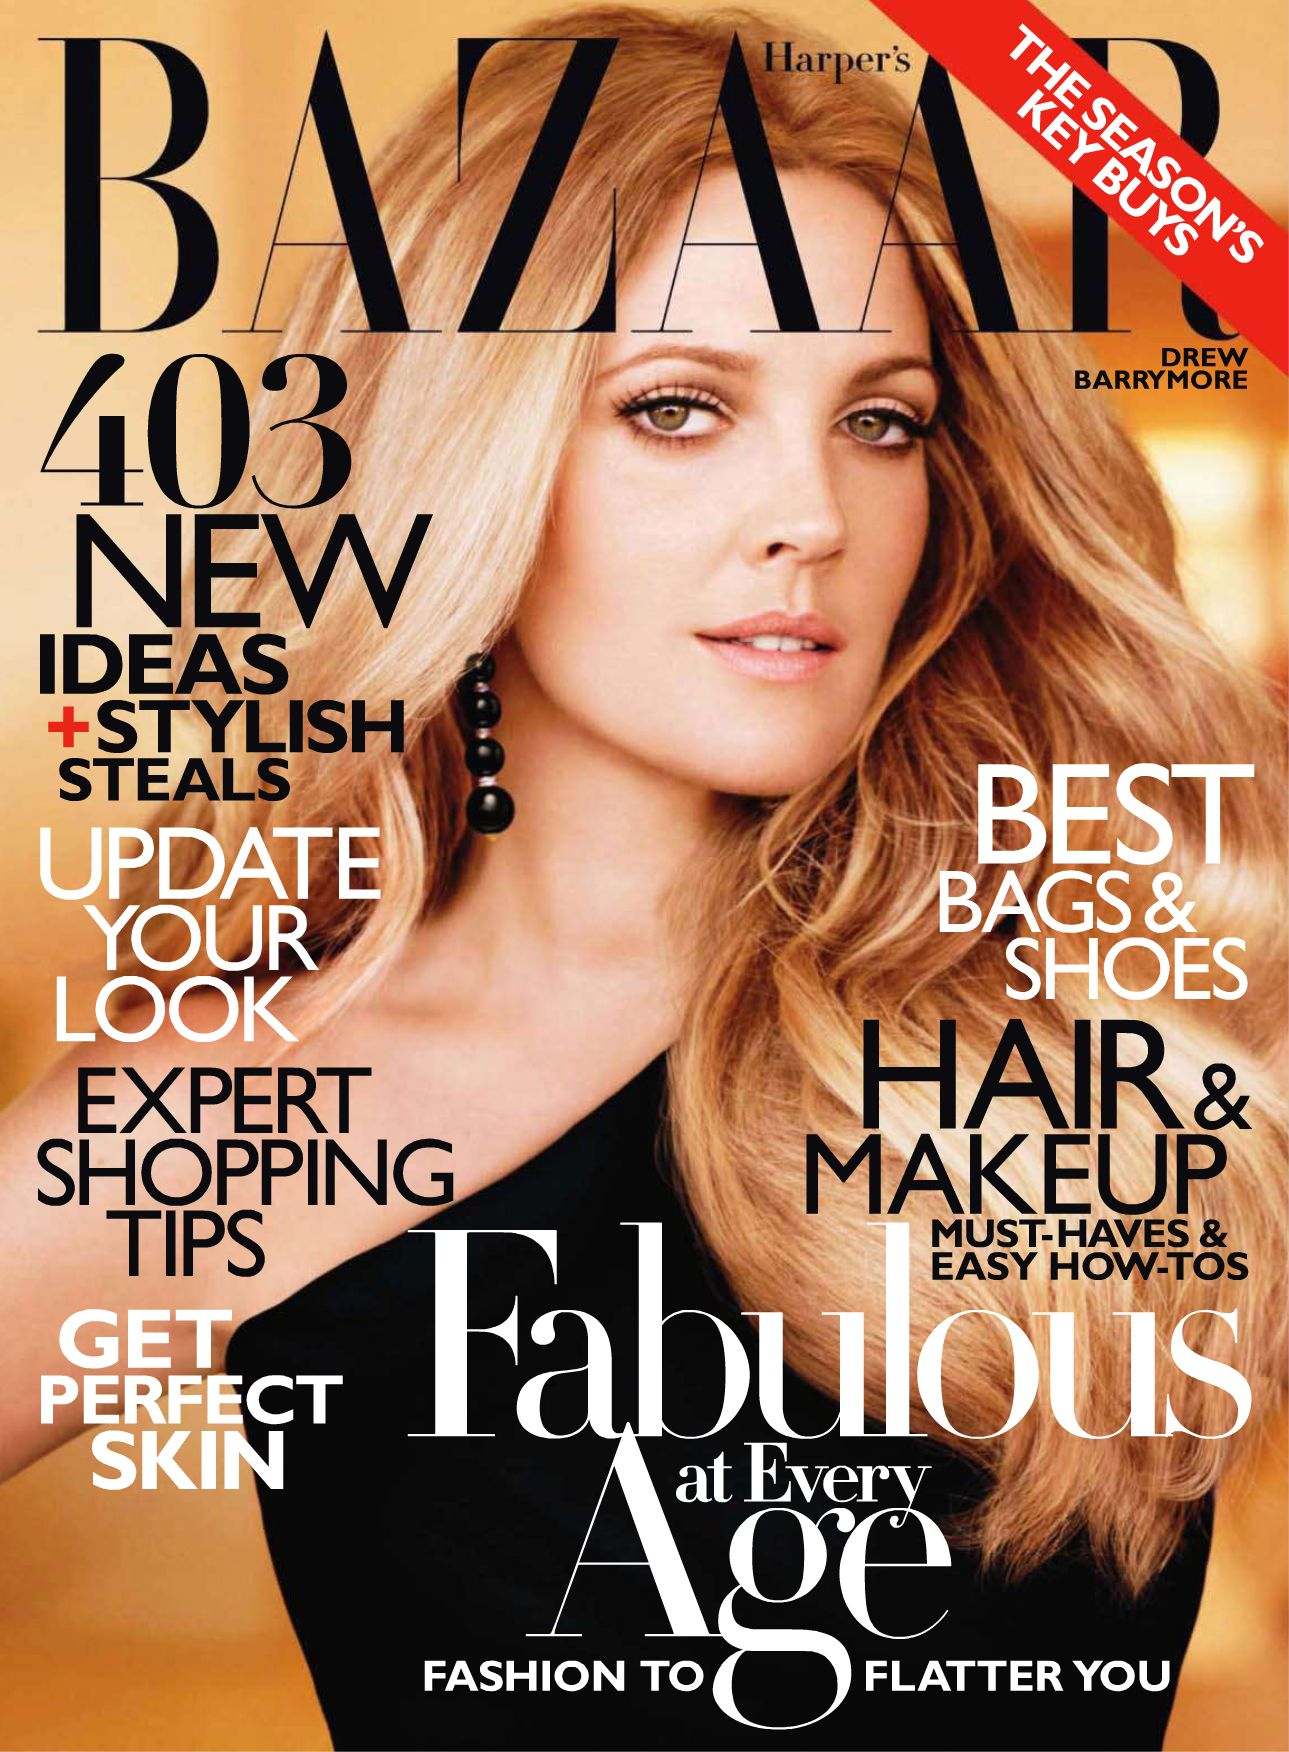 drew-barrymore-harpers-bazaar-magazine-oct-2010-issue-06 - GotCeleb